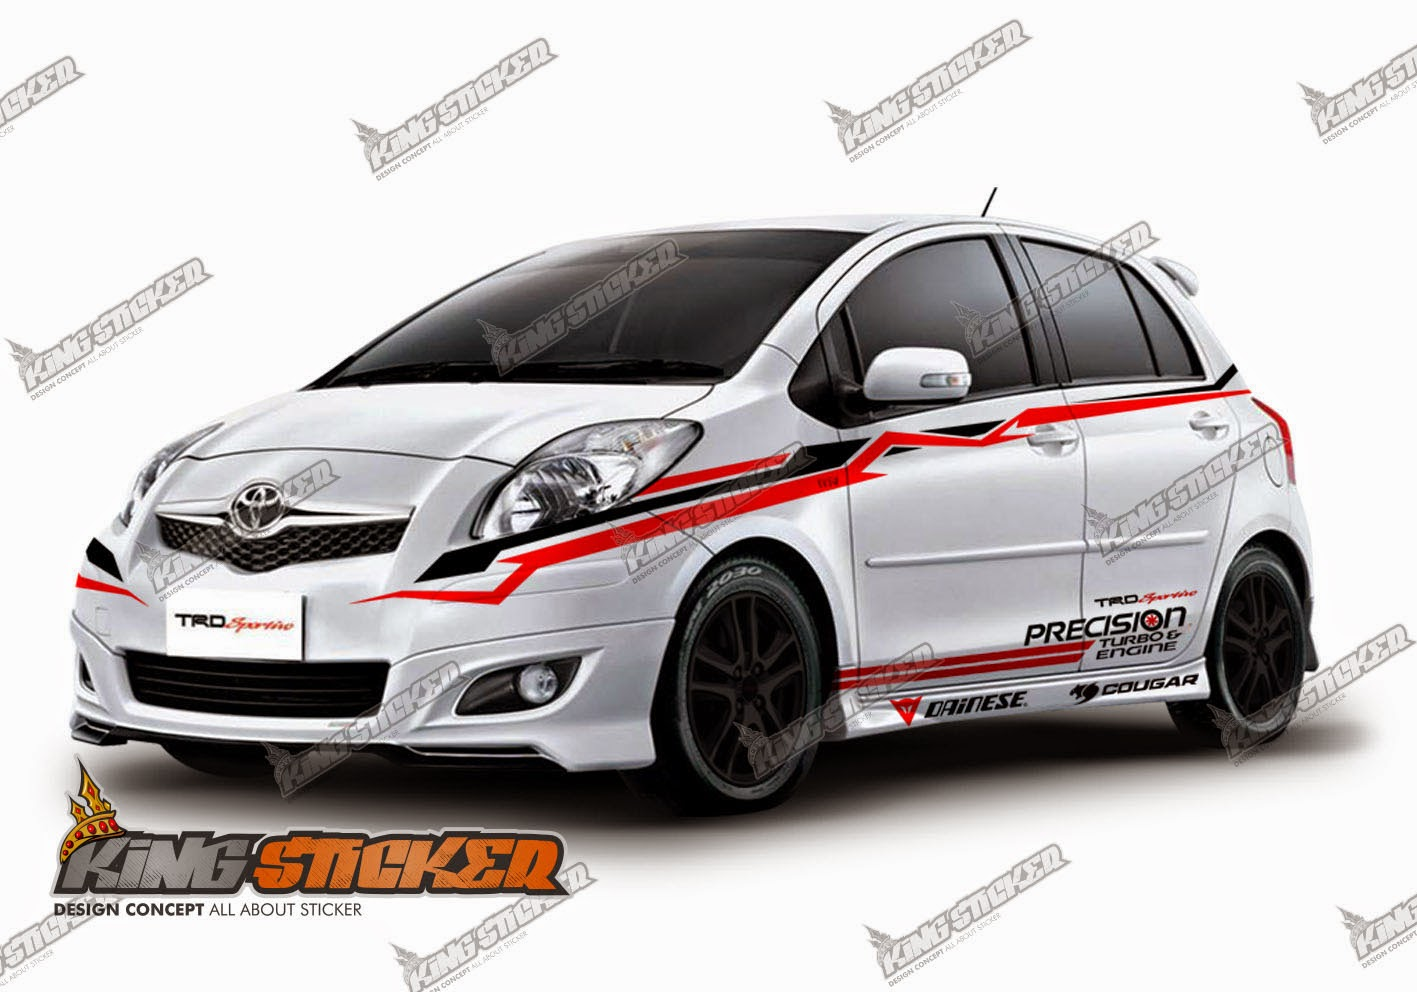 CUTTING STICKER TERMURAH : Cutting Sticker Mobil